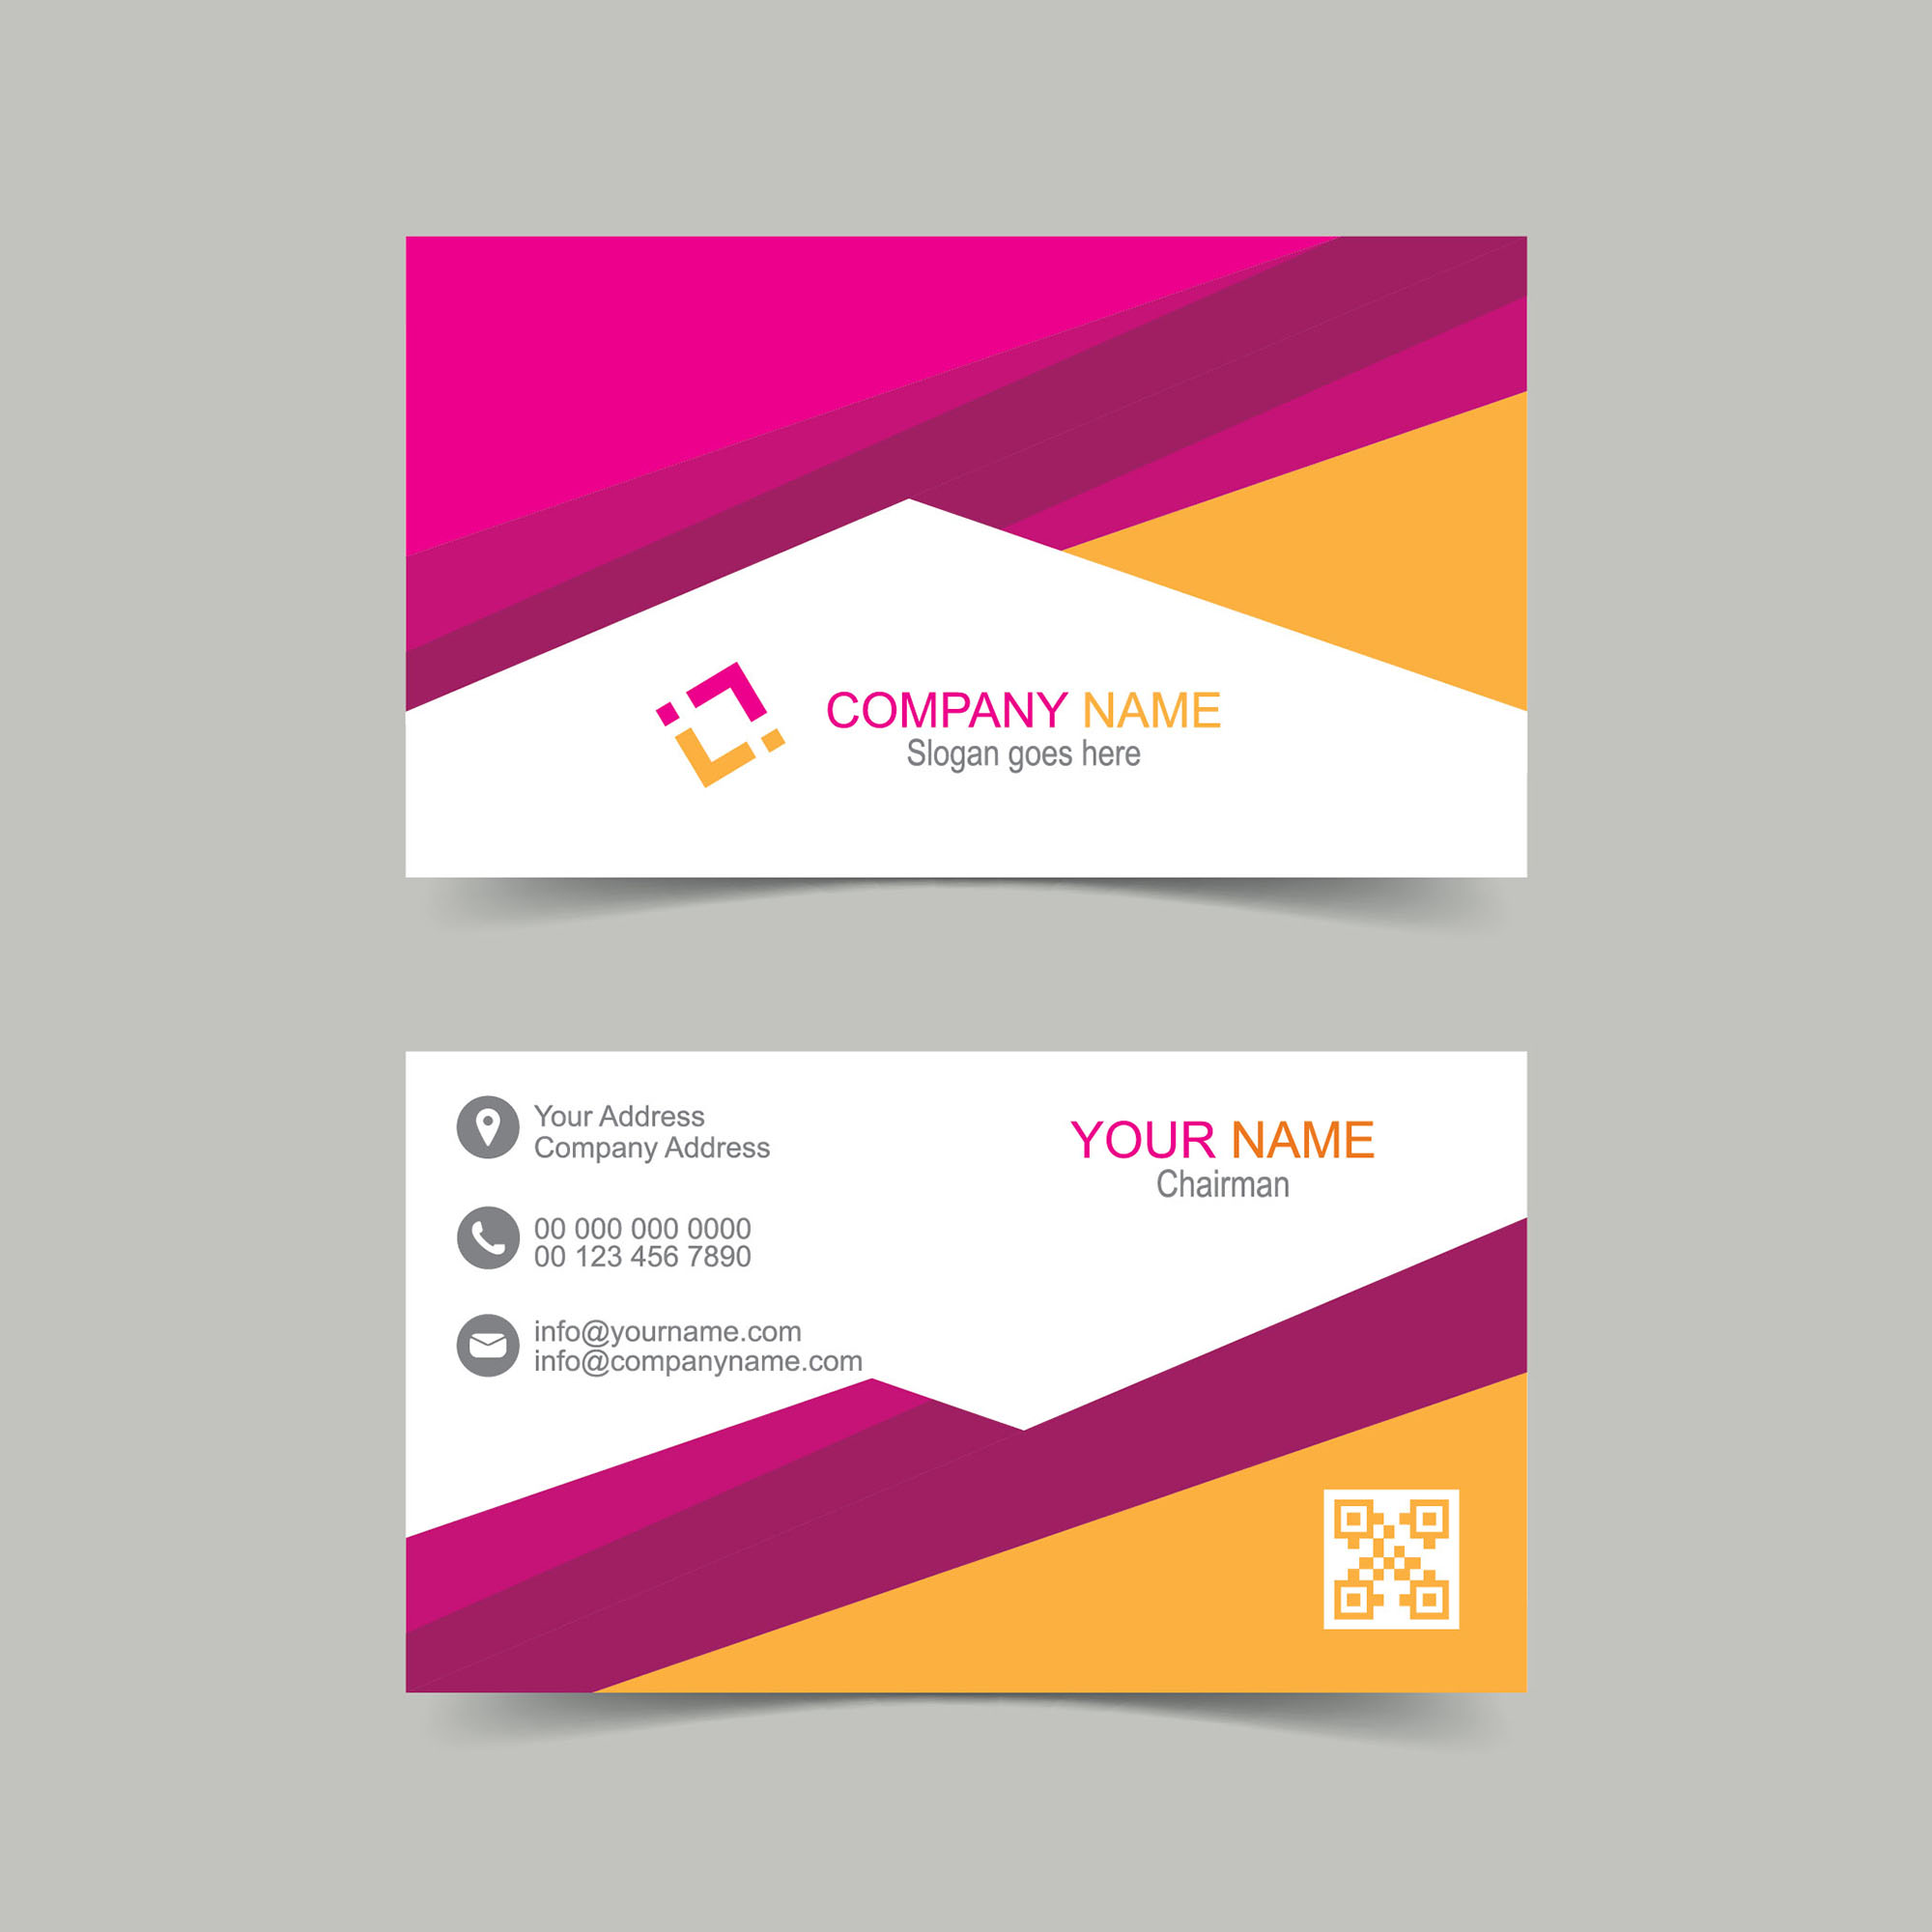 Vector business card design free download wisxi business card business cards business card design business card template design templates friedricerecipe Choice Image